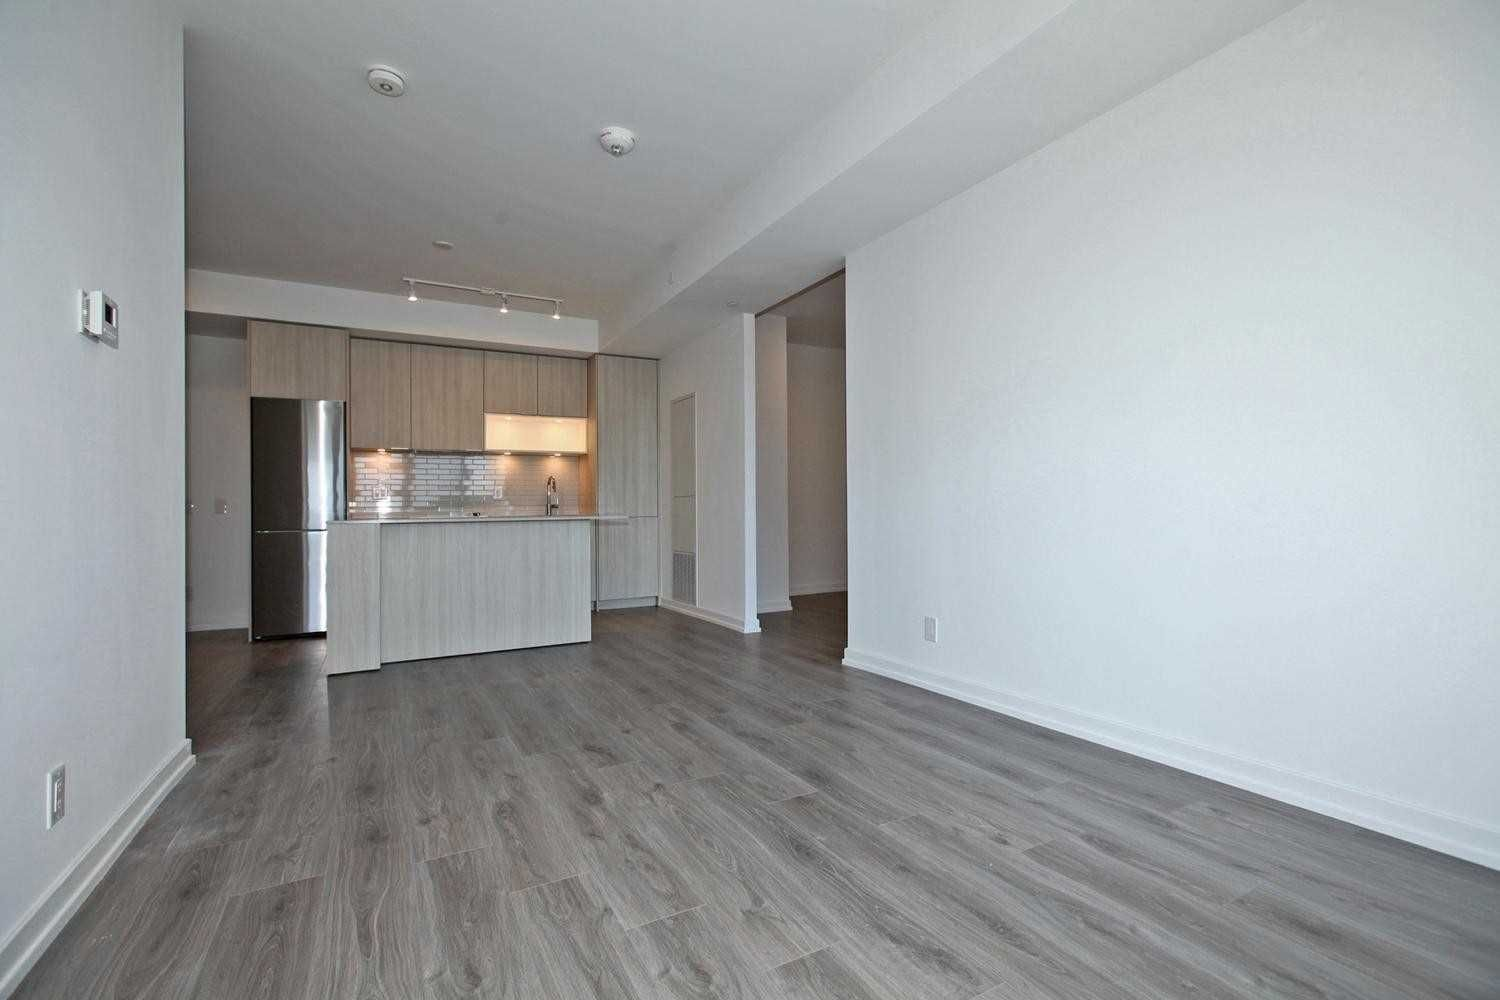 20 Tubman Ave, unit 502 for rent in Toronto - image #1